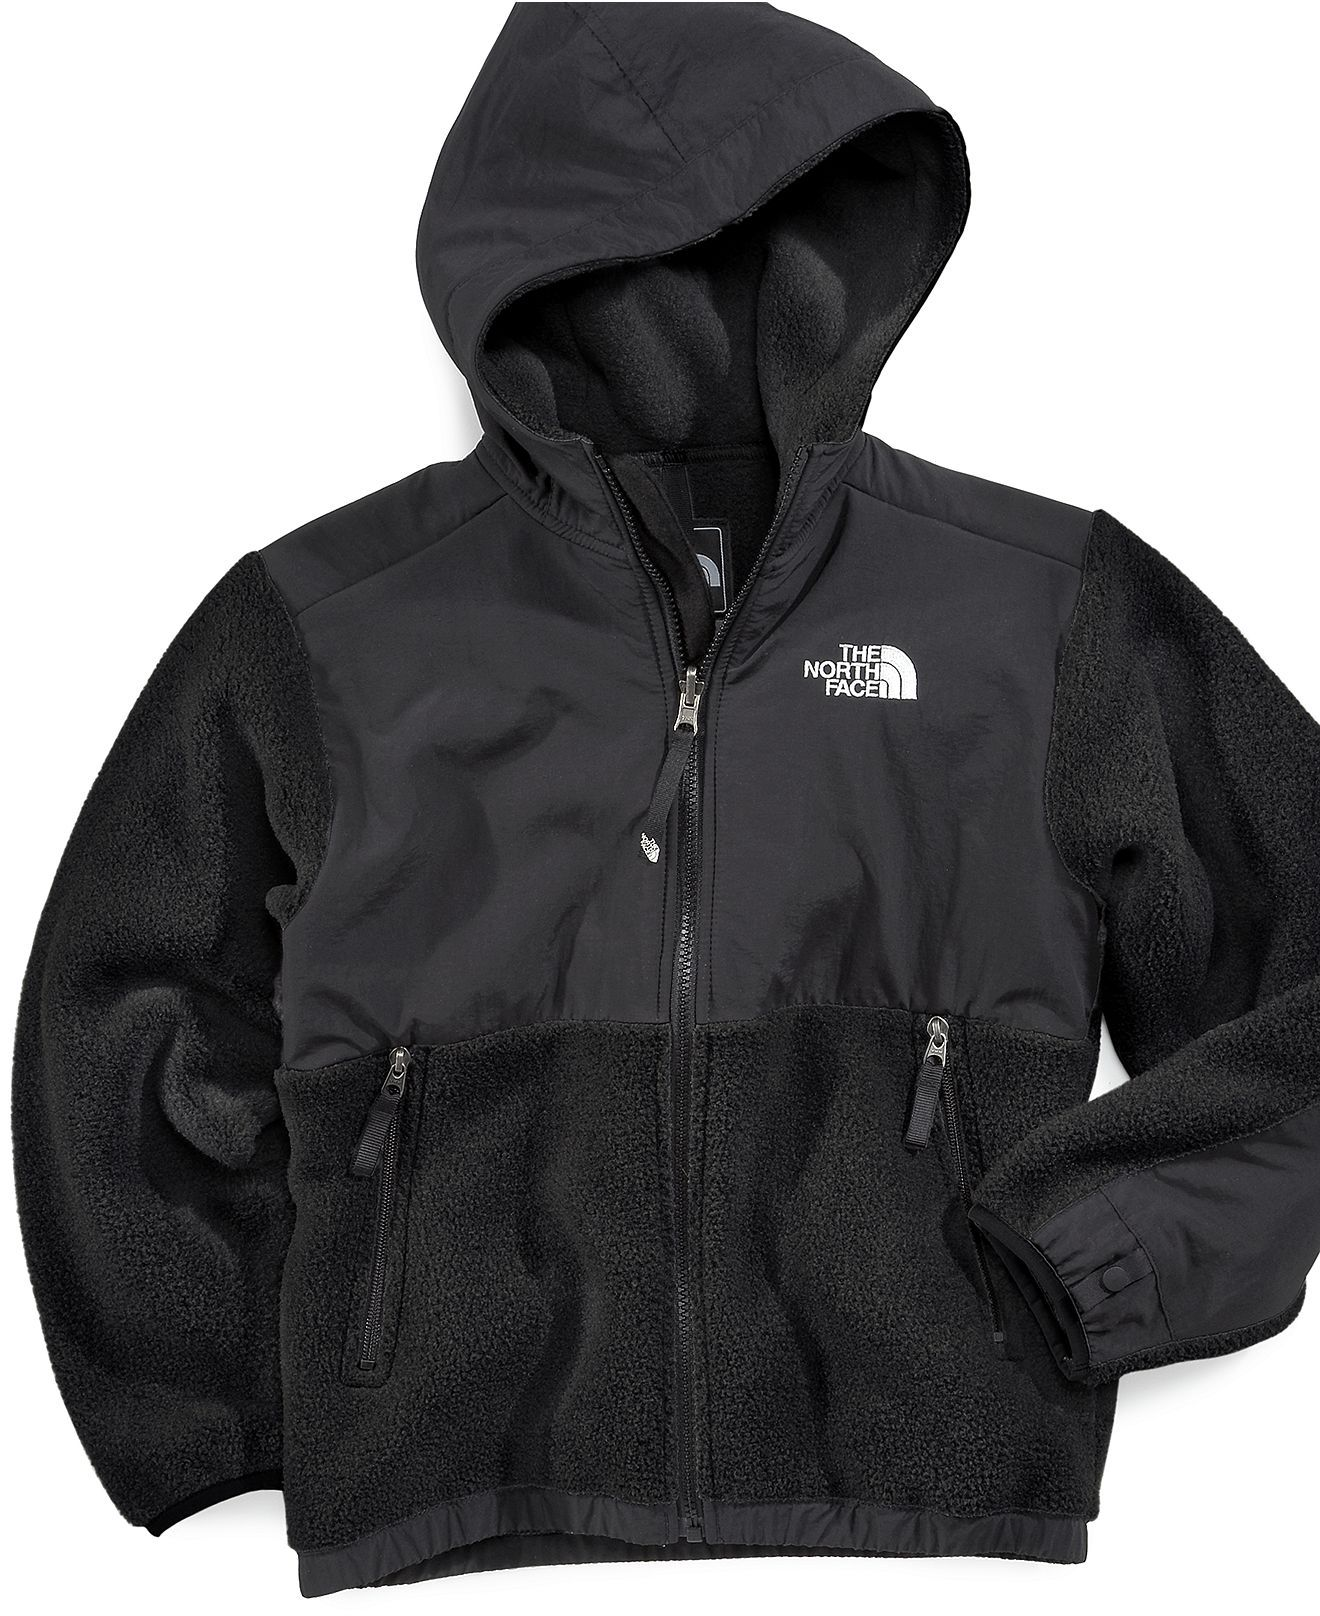 552cade30c50 The North Face Kids Jacket